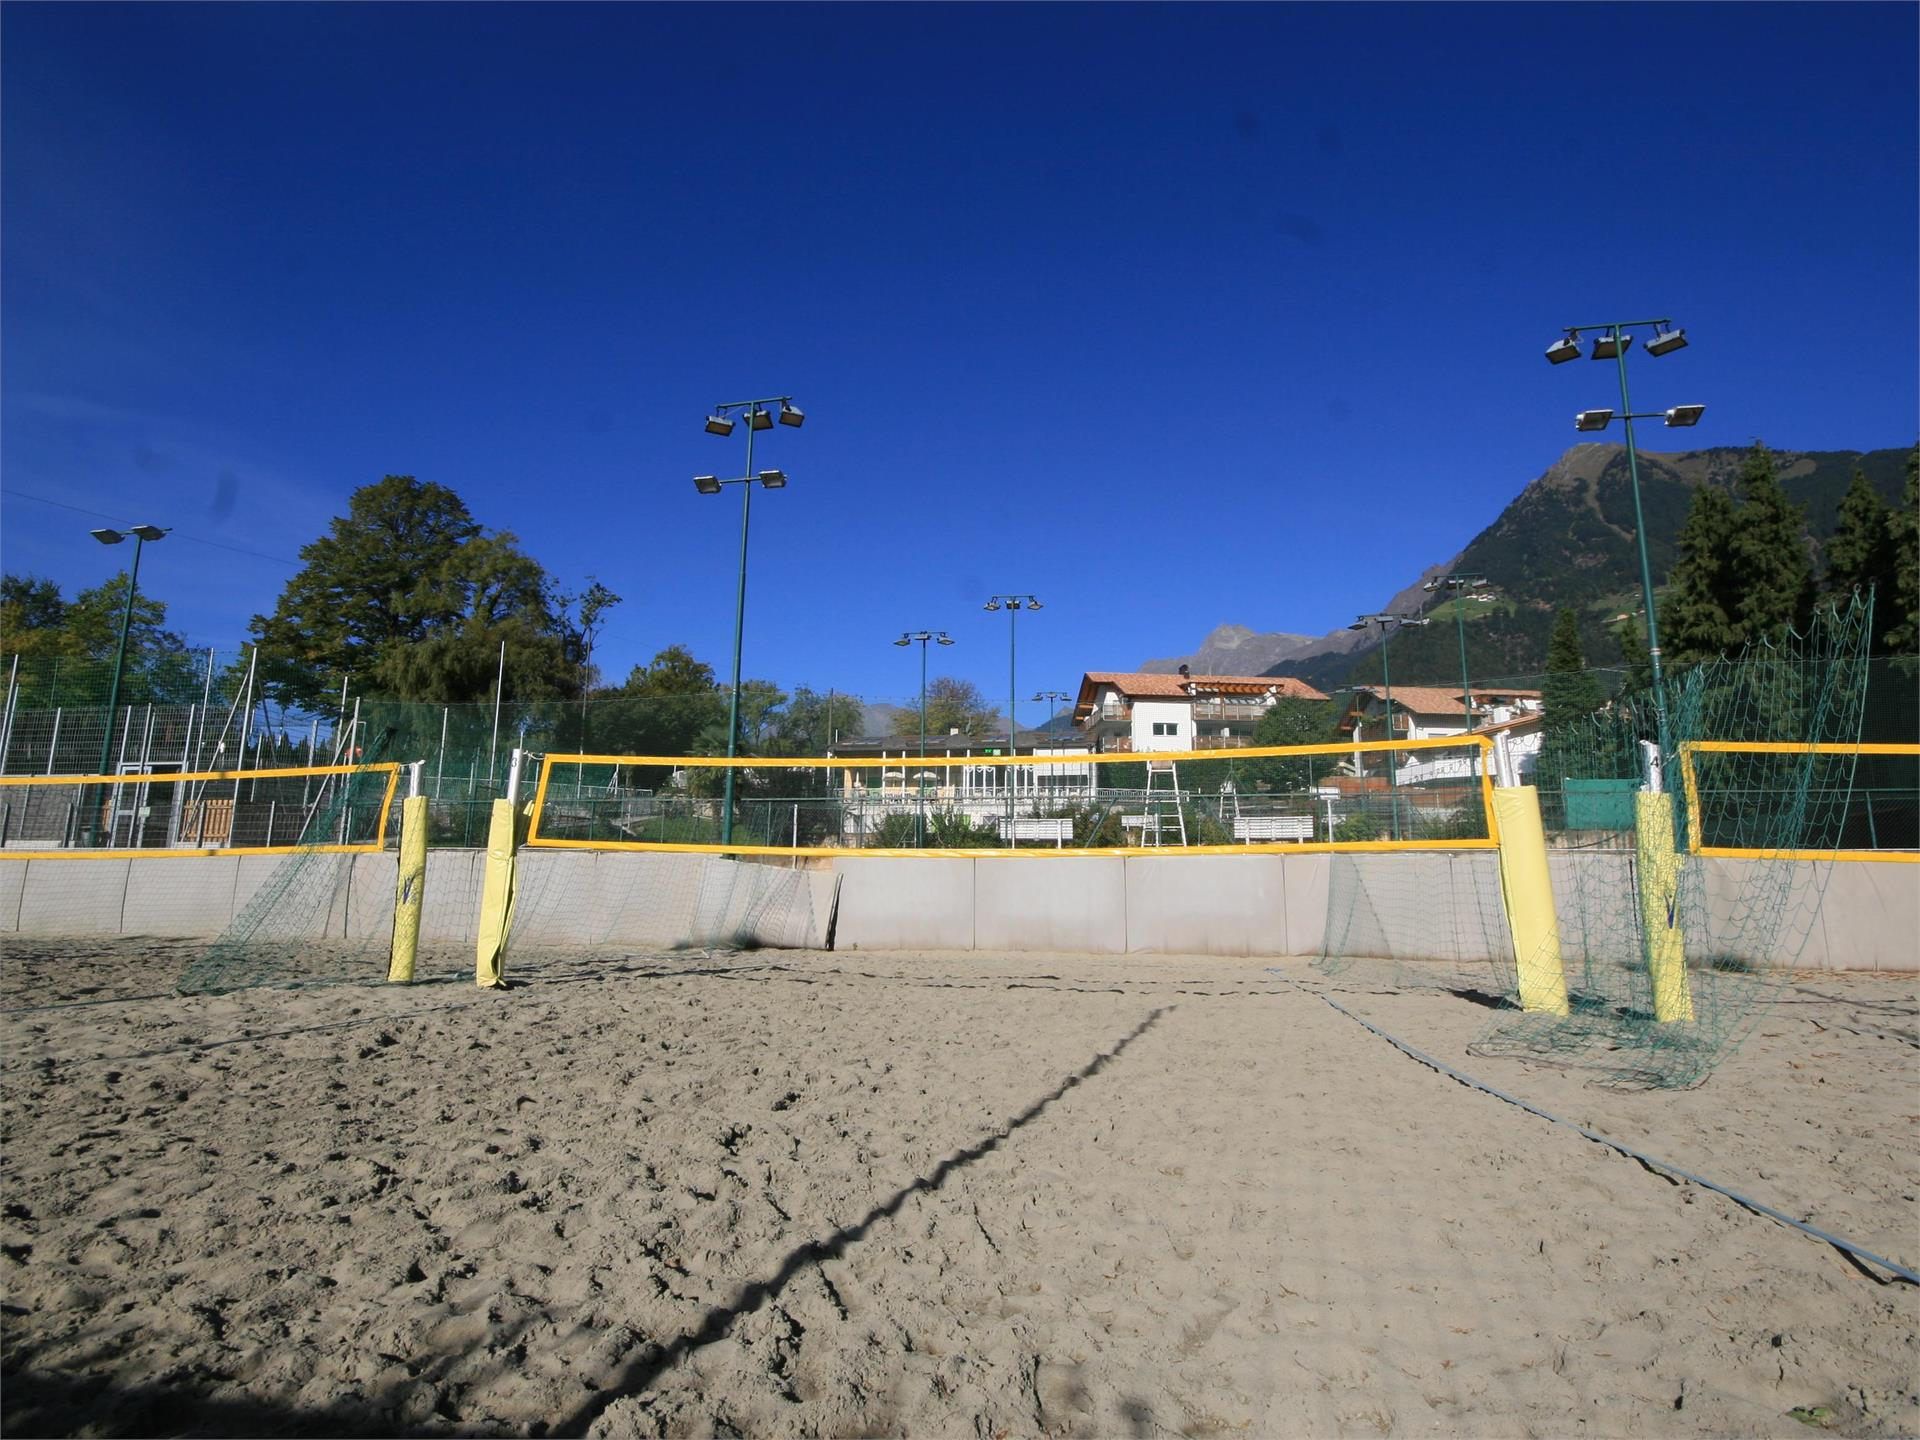 Centro di beach-volley Tirolo